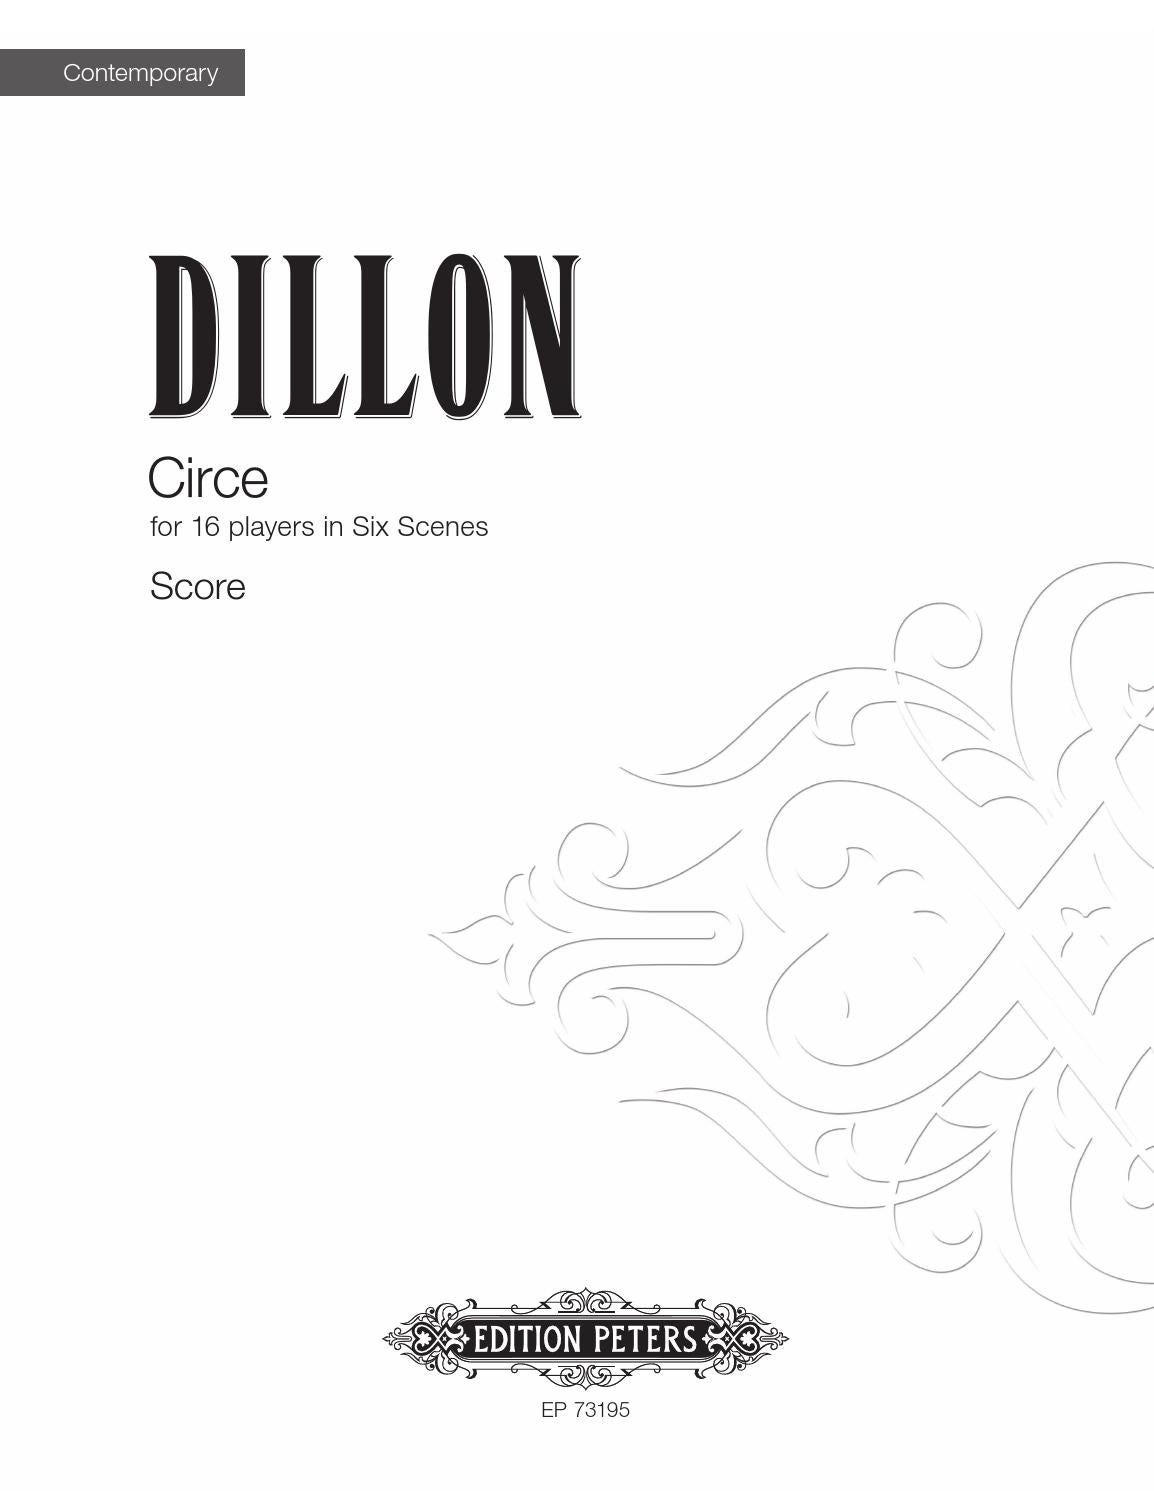 Dillon - Circe by Edition Peters - issuu